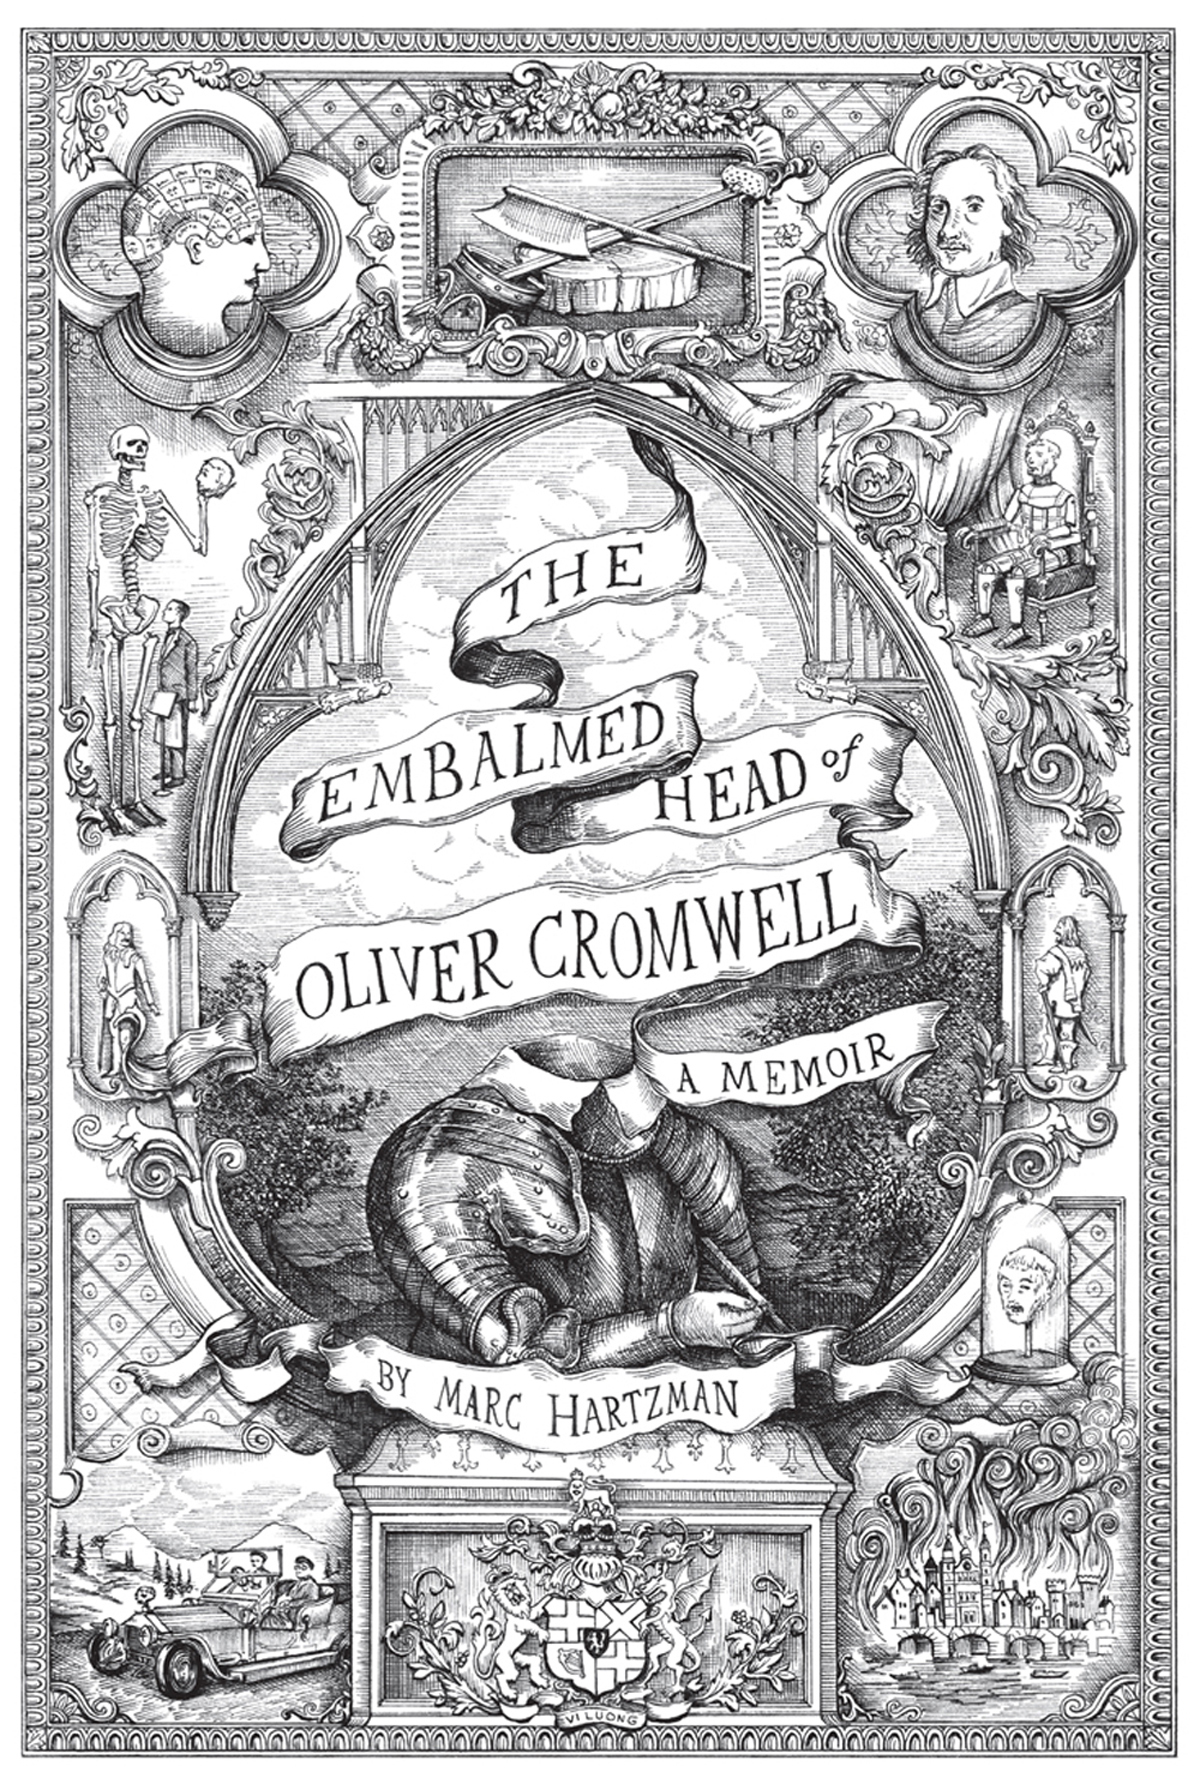 The Embalmed Head of Oliver Cromwell: A Memoir by Marc Hartzman